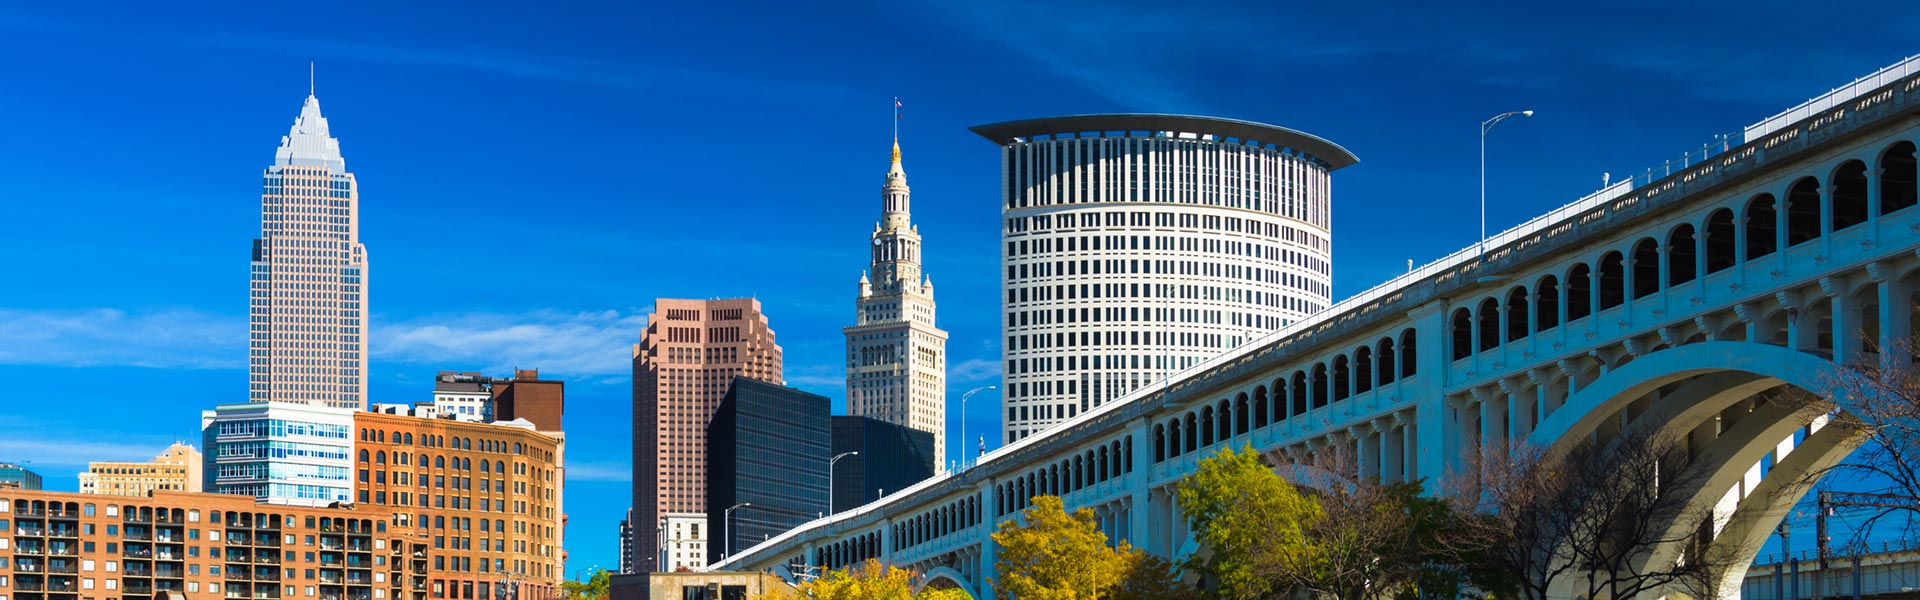 holiday-inn-cleveland-special offers